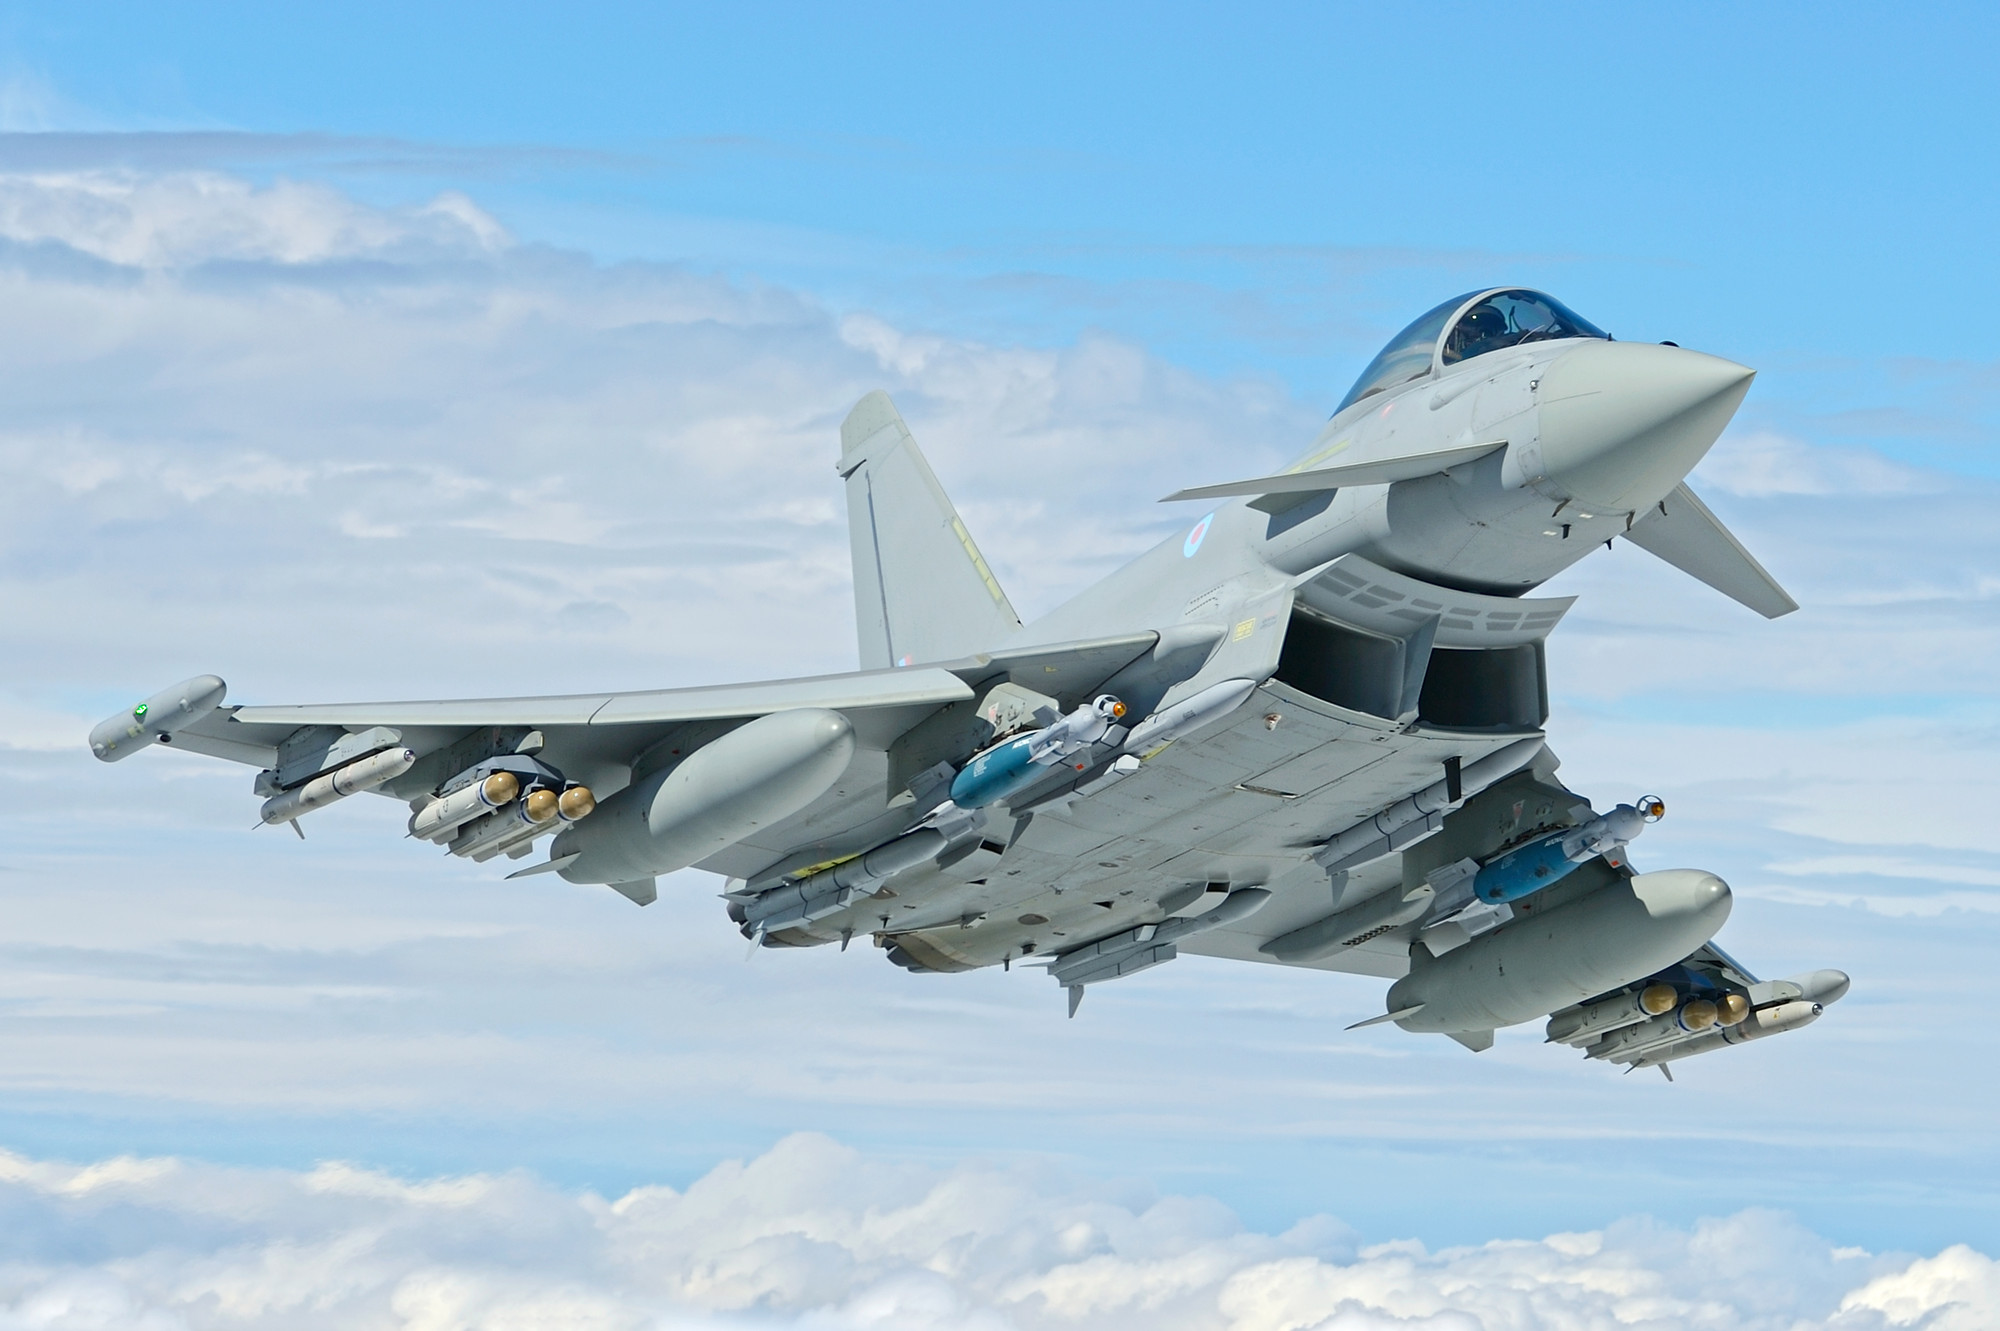 A Eurofighter Typhoon aircraft. Photo via BAE Systems